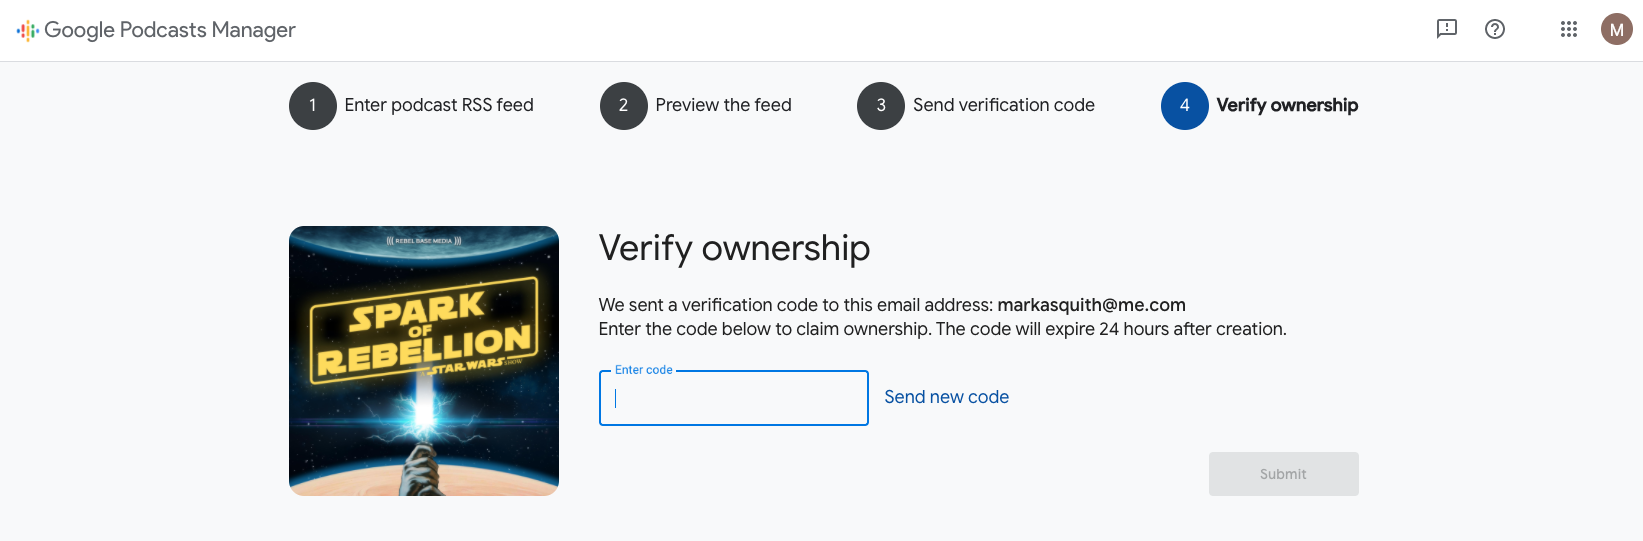 A screenshot of the 'verify ownership' step of submitting a podcast in Google Podcasts Manager. The screenshot shows someone pasting a verification code into a box to claim ownership of the podcast.